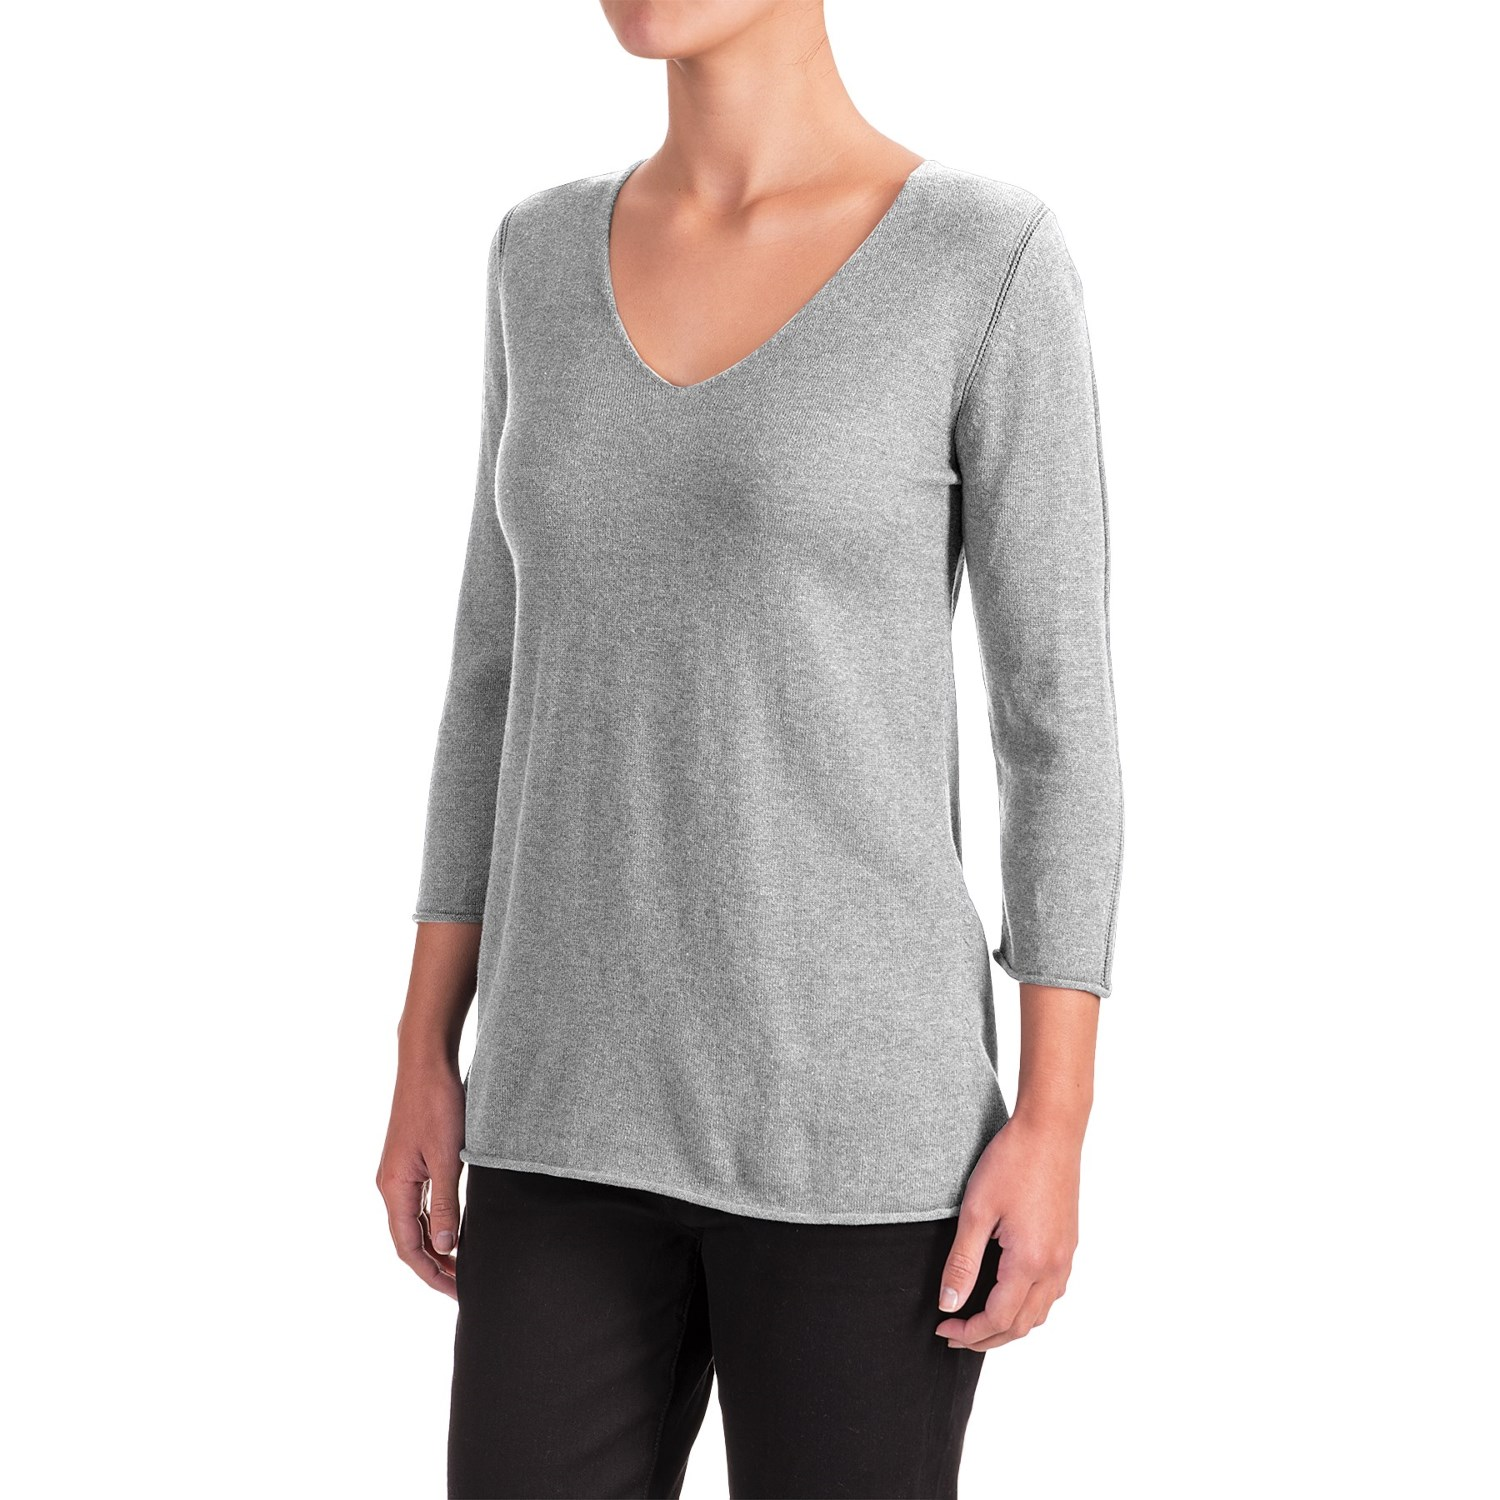 Indigenous Pointelle Sweater (For Women) - Save 58%